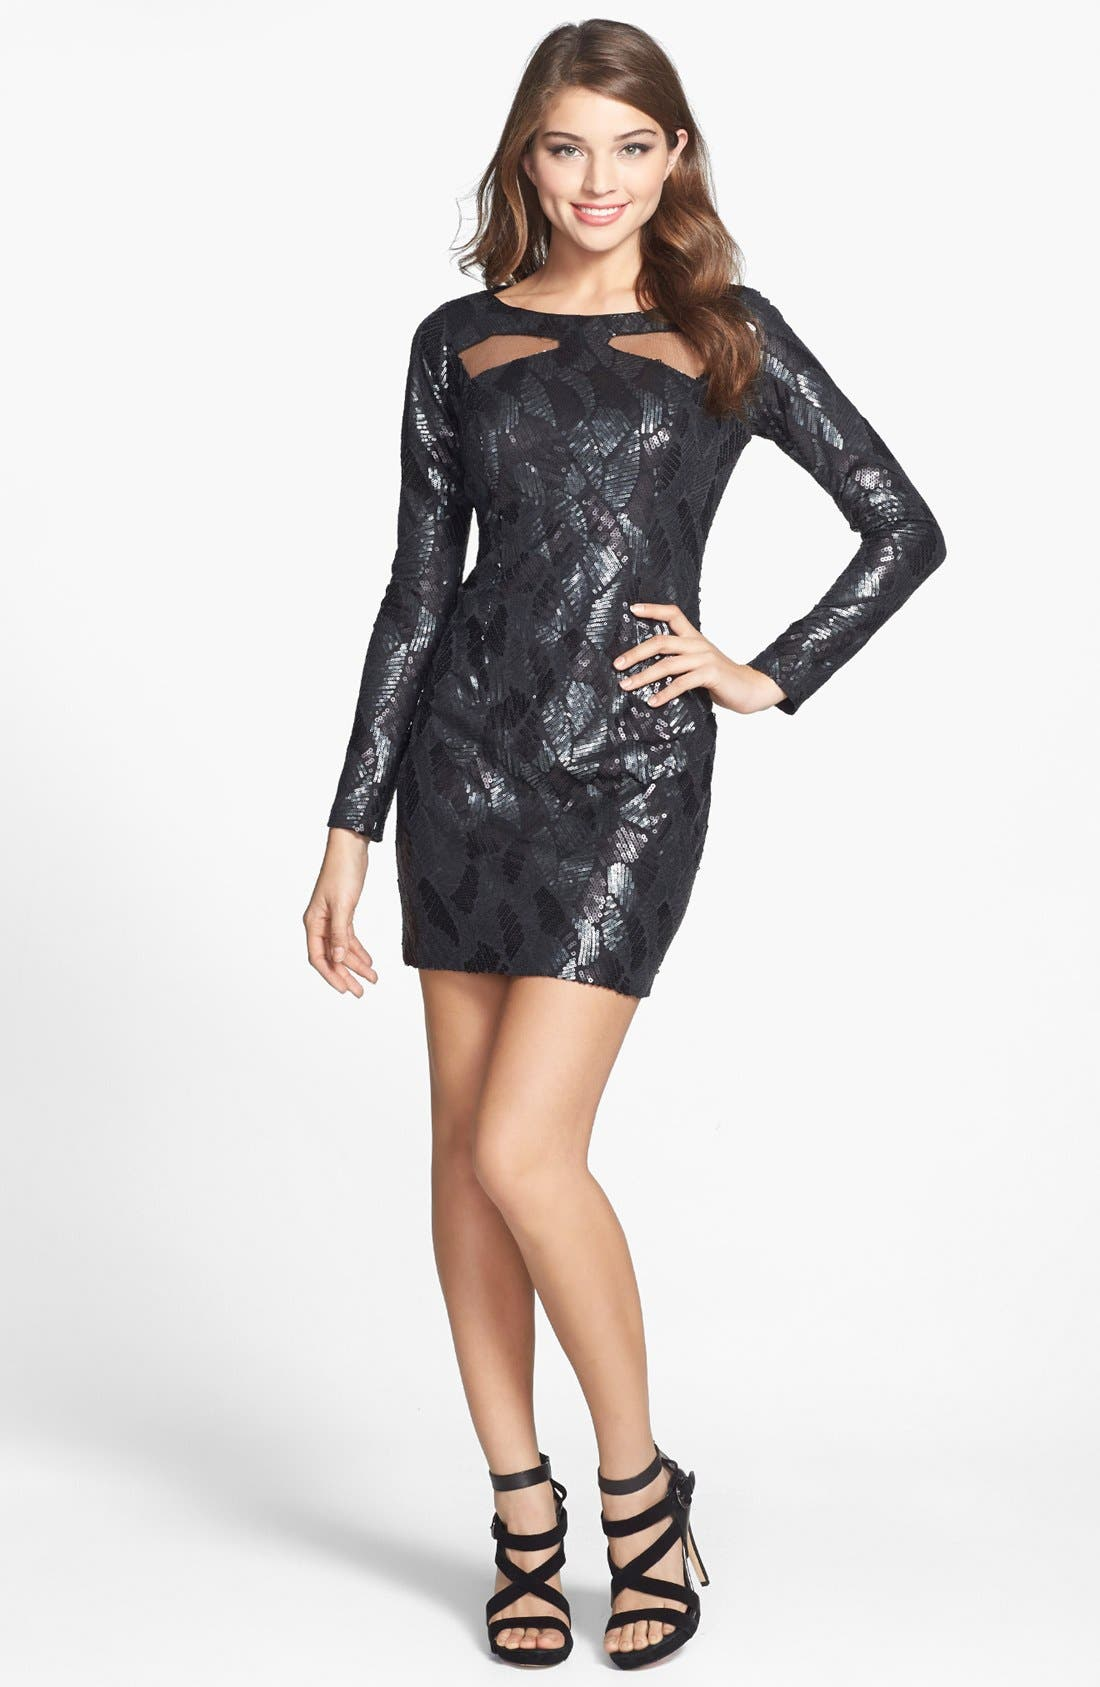 Alternate Image 1 Selected - Hailey by Adrianna Papell Sequin Pattern Illusion Cutout Jersey Dress